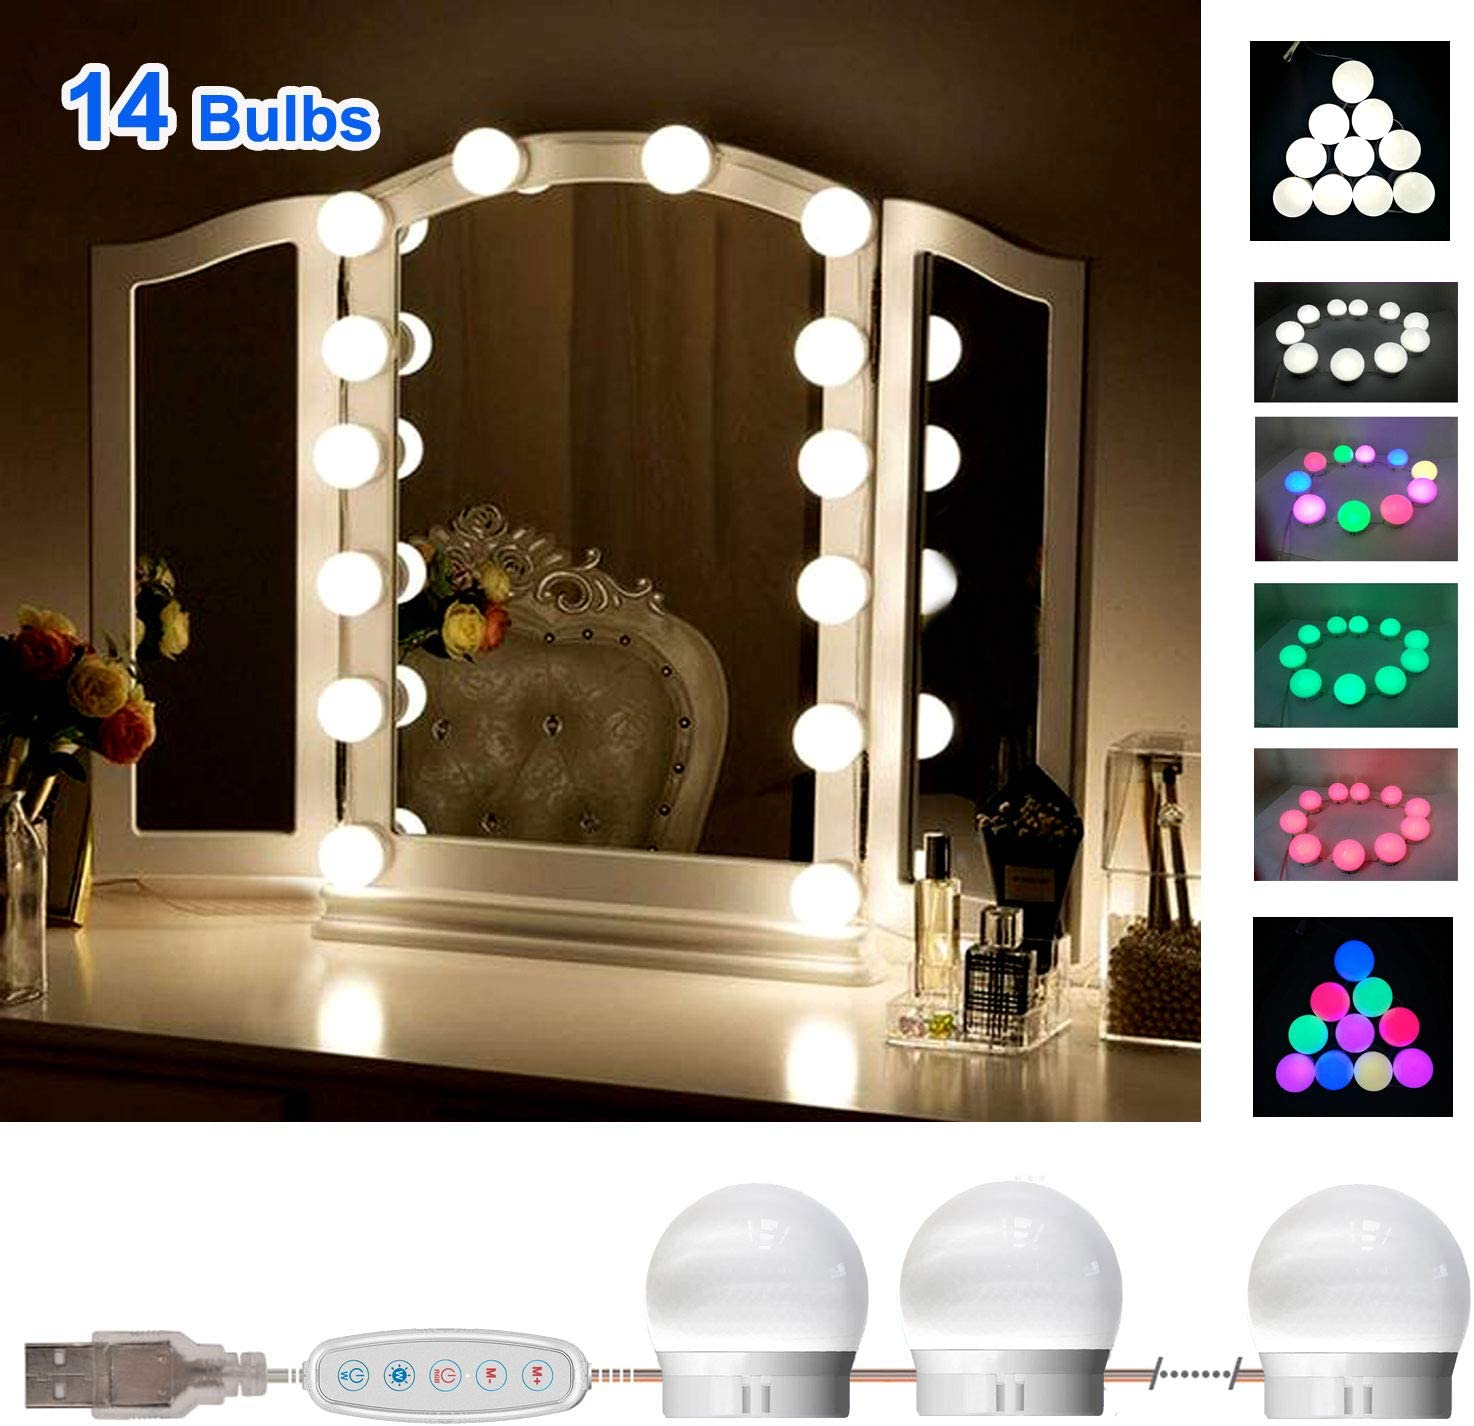 SELFILA Vanity Lights for Mirror, Adjustable RGB Color DIY Hollywood Style Led Vanity Mirror Lights kit in Dressing Room, Bathroom Wall Mirror(Mirror & USB Charger Not Include) (14 Bulbs)